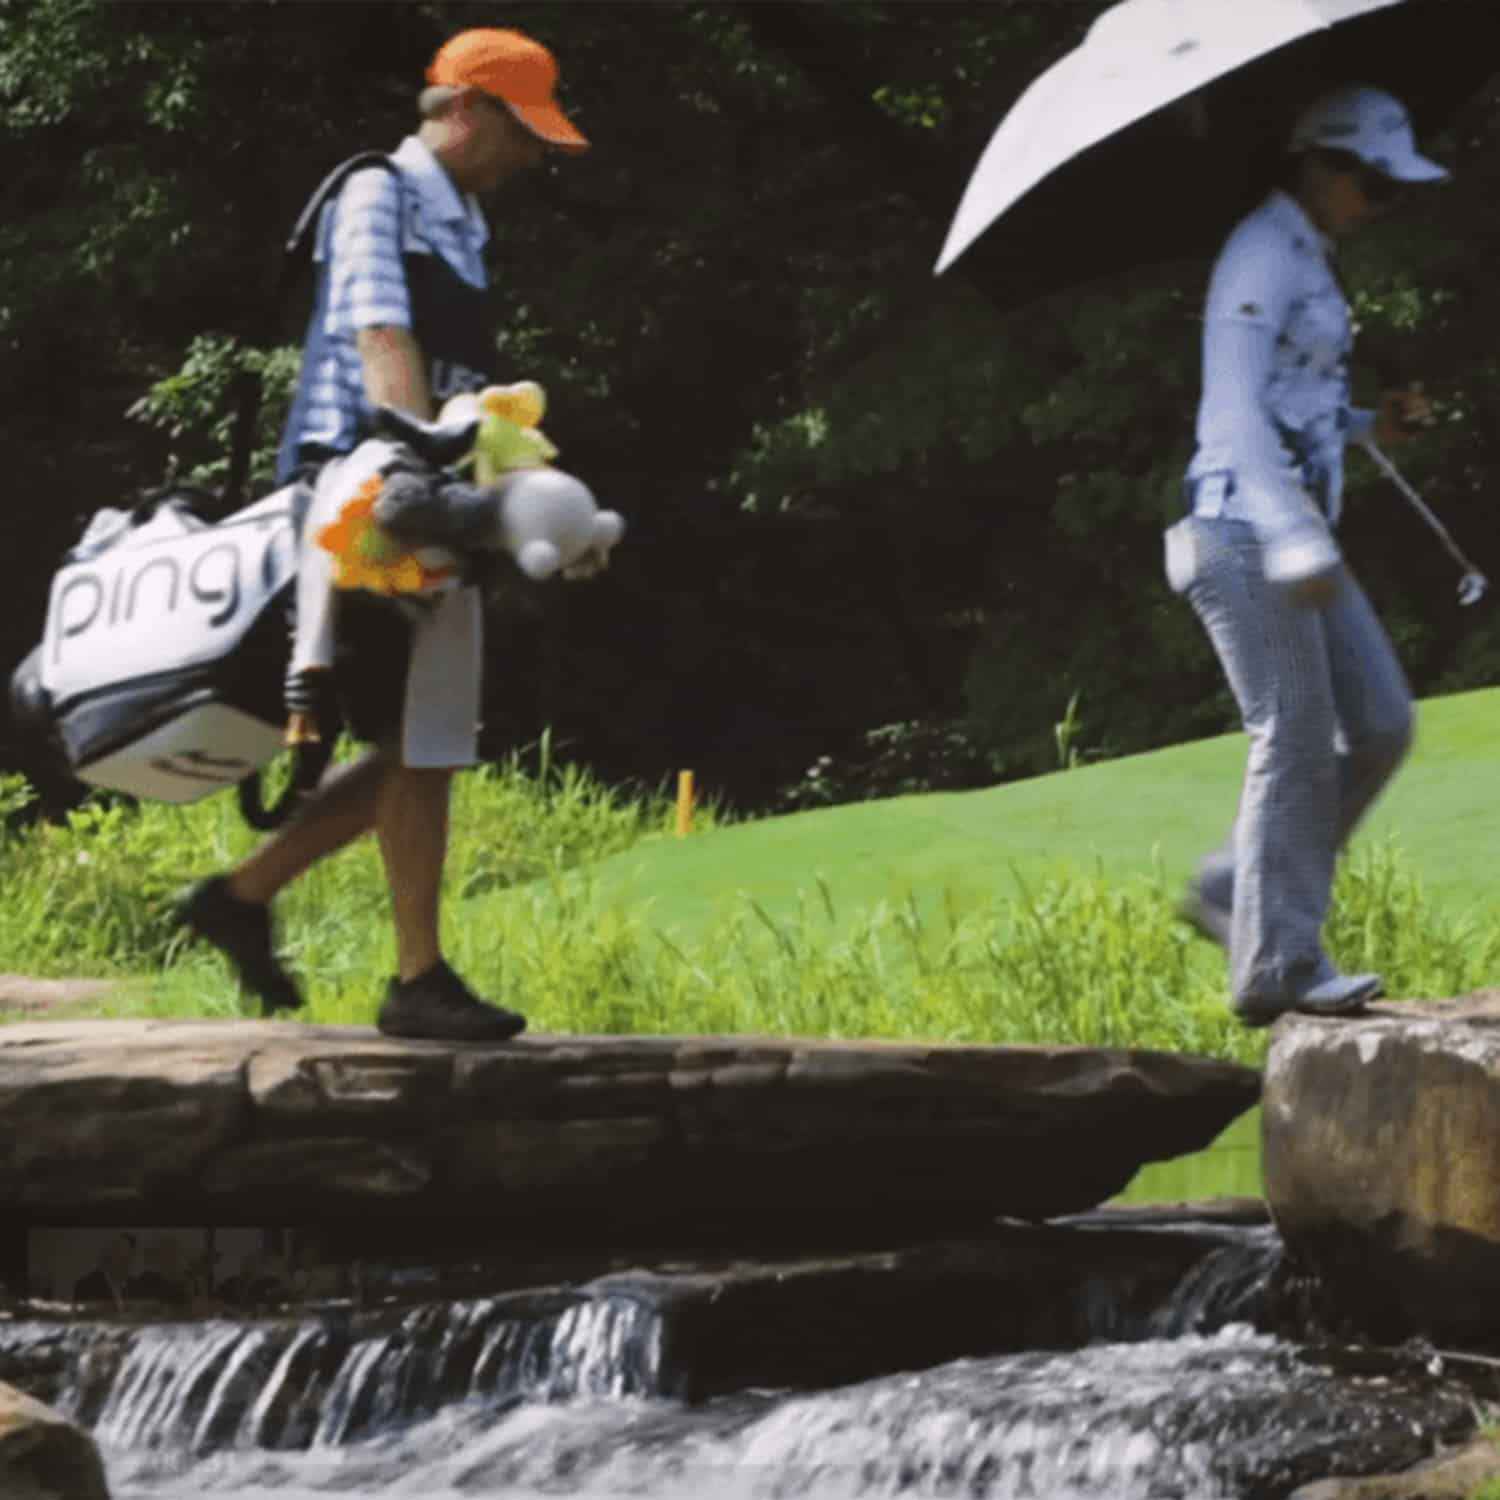 Player and caddie walking across rock waterfall